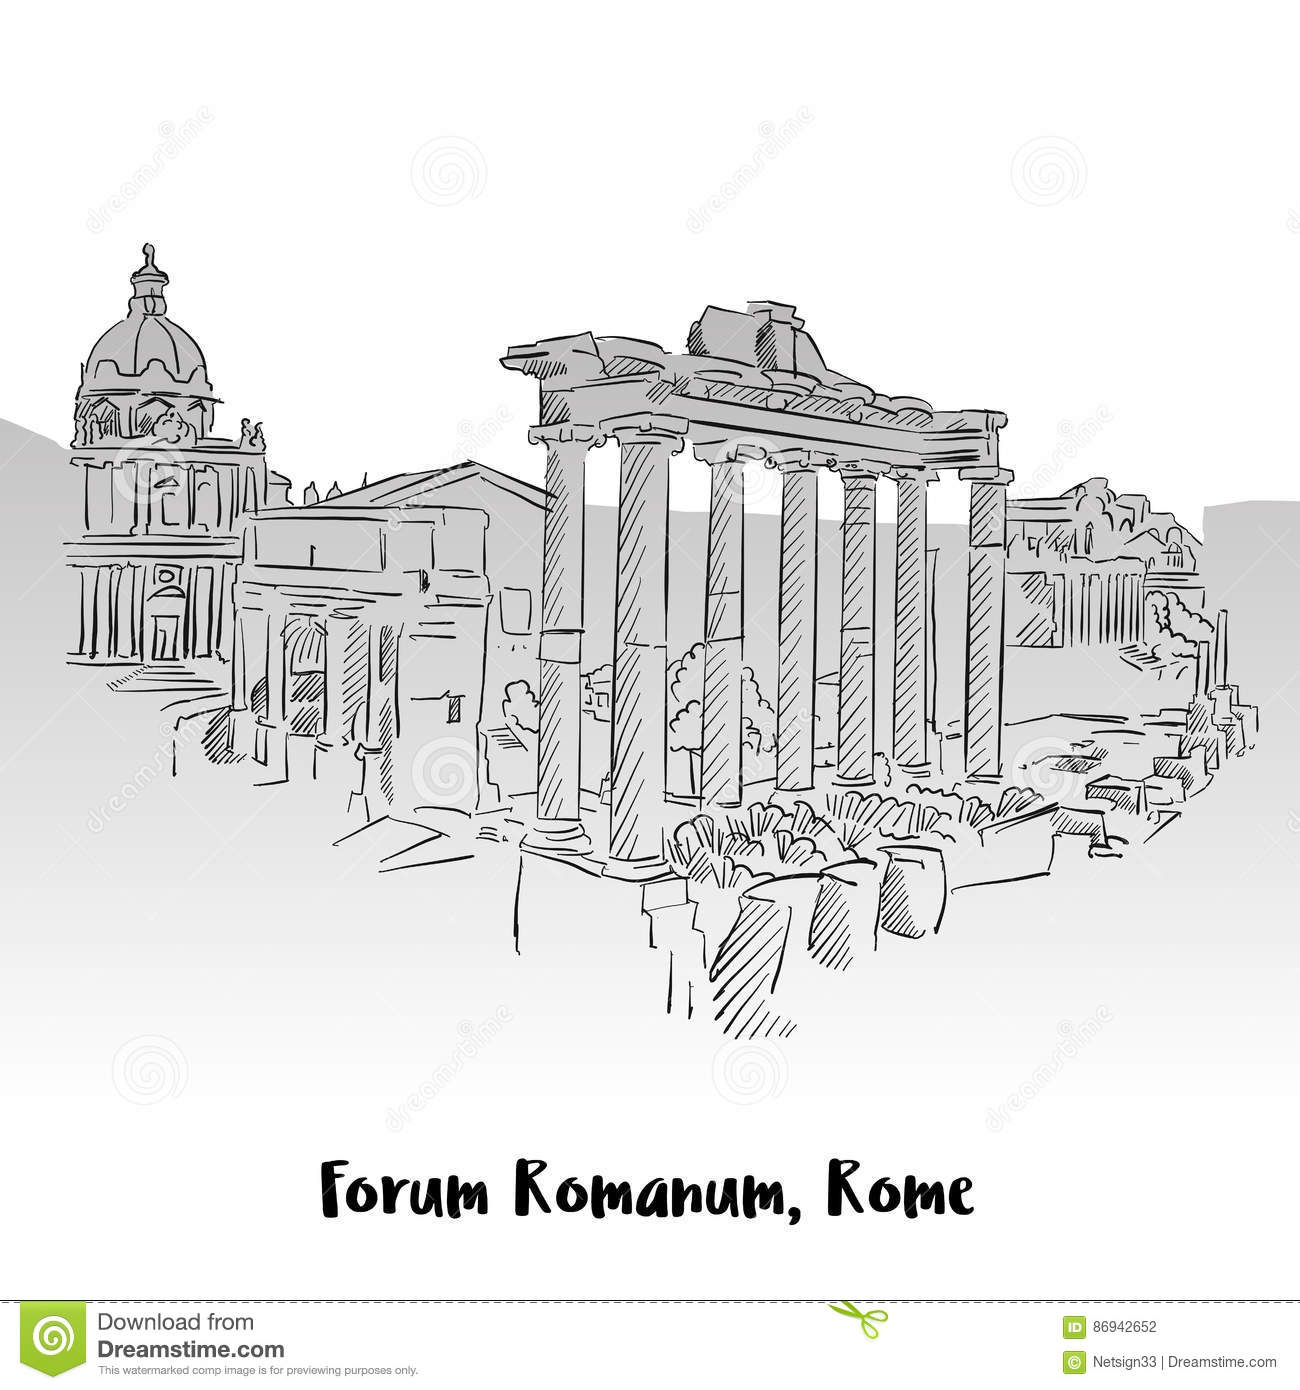 Forum Romanum, Rome, Greeting Card Stock Vector